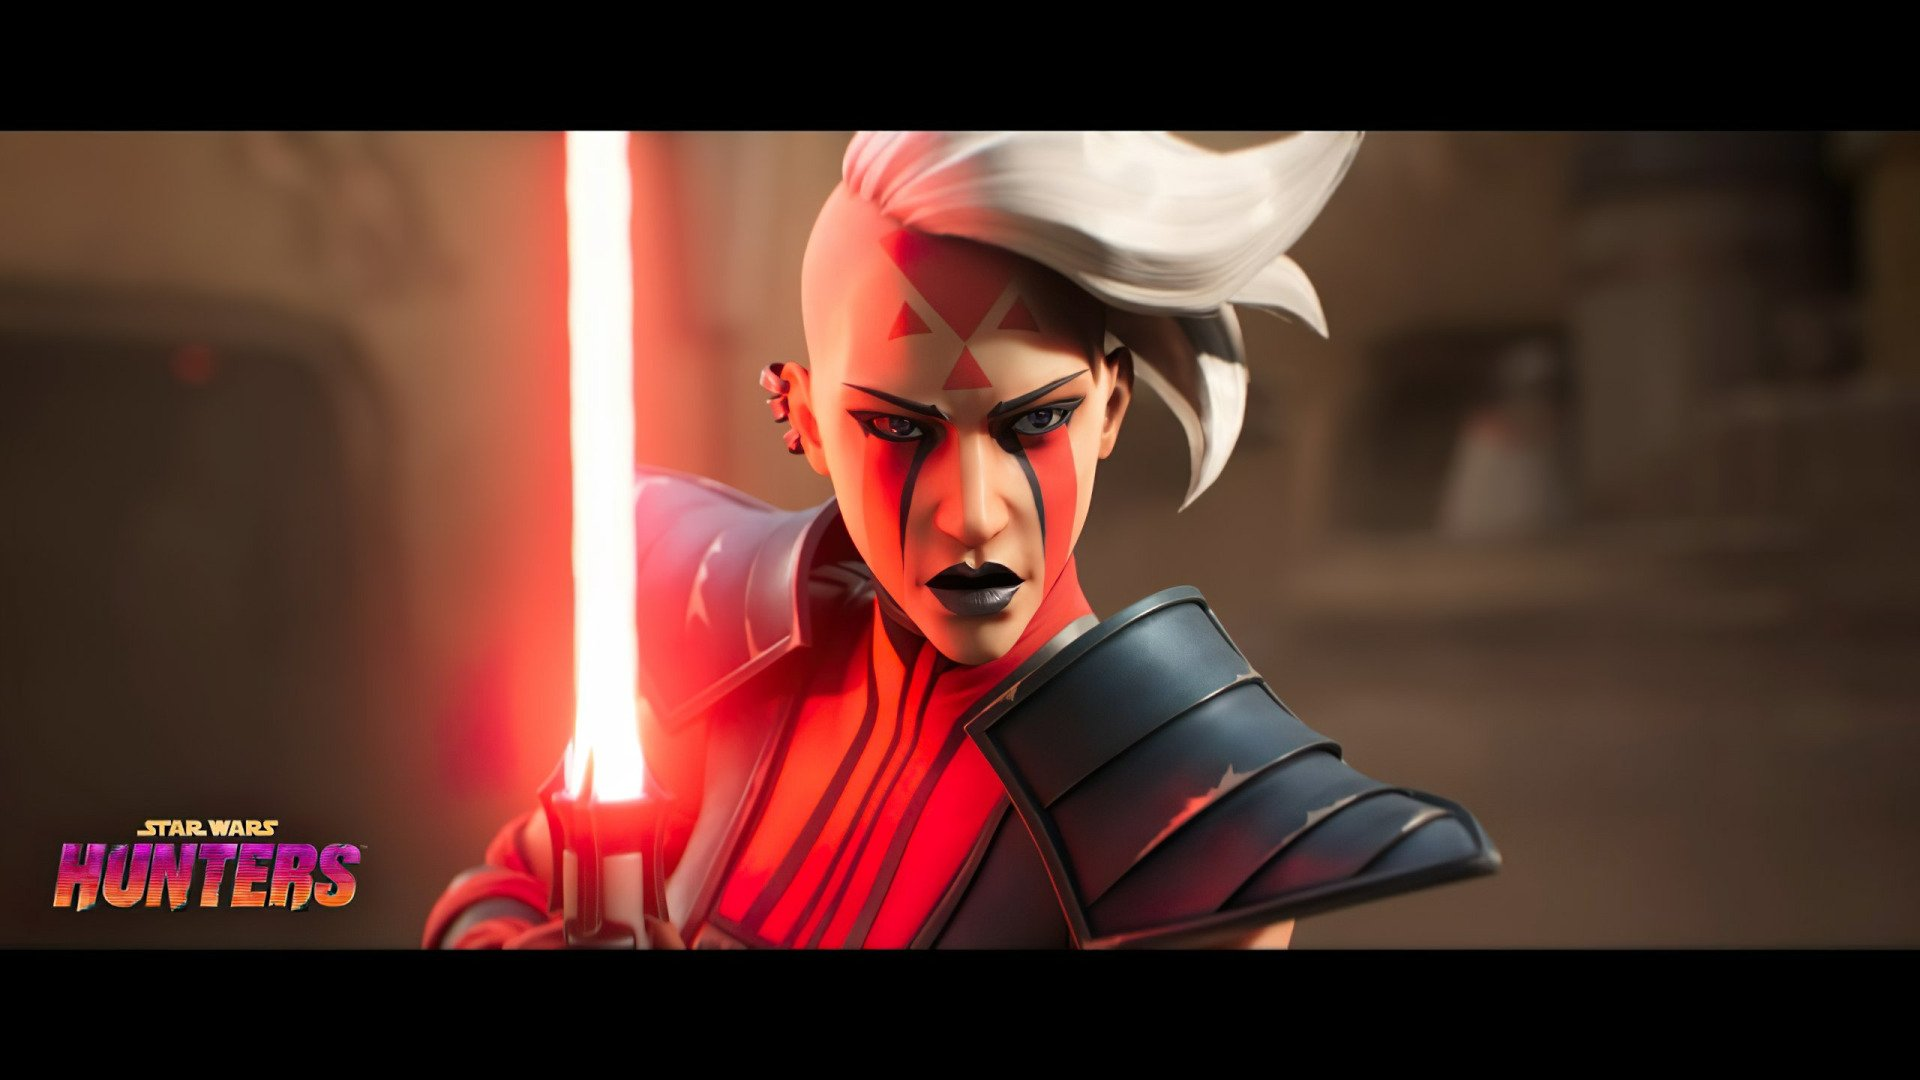 Android, Trailer, iOS, Nintendo, actionspiel, Nintendo Switch, Multiplayer, Online-Spiele, Star Wars, Free-to-Play, Mobile Gaming, Zynga, Mobile Game, Star Wars: Hunters, Star Wars Hunters